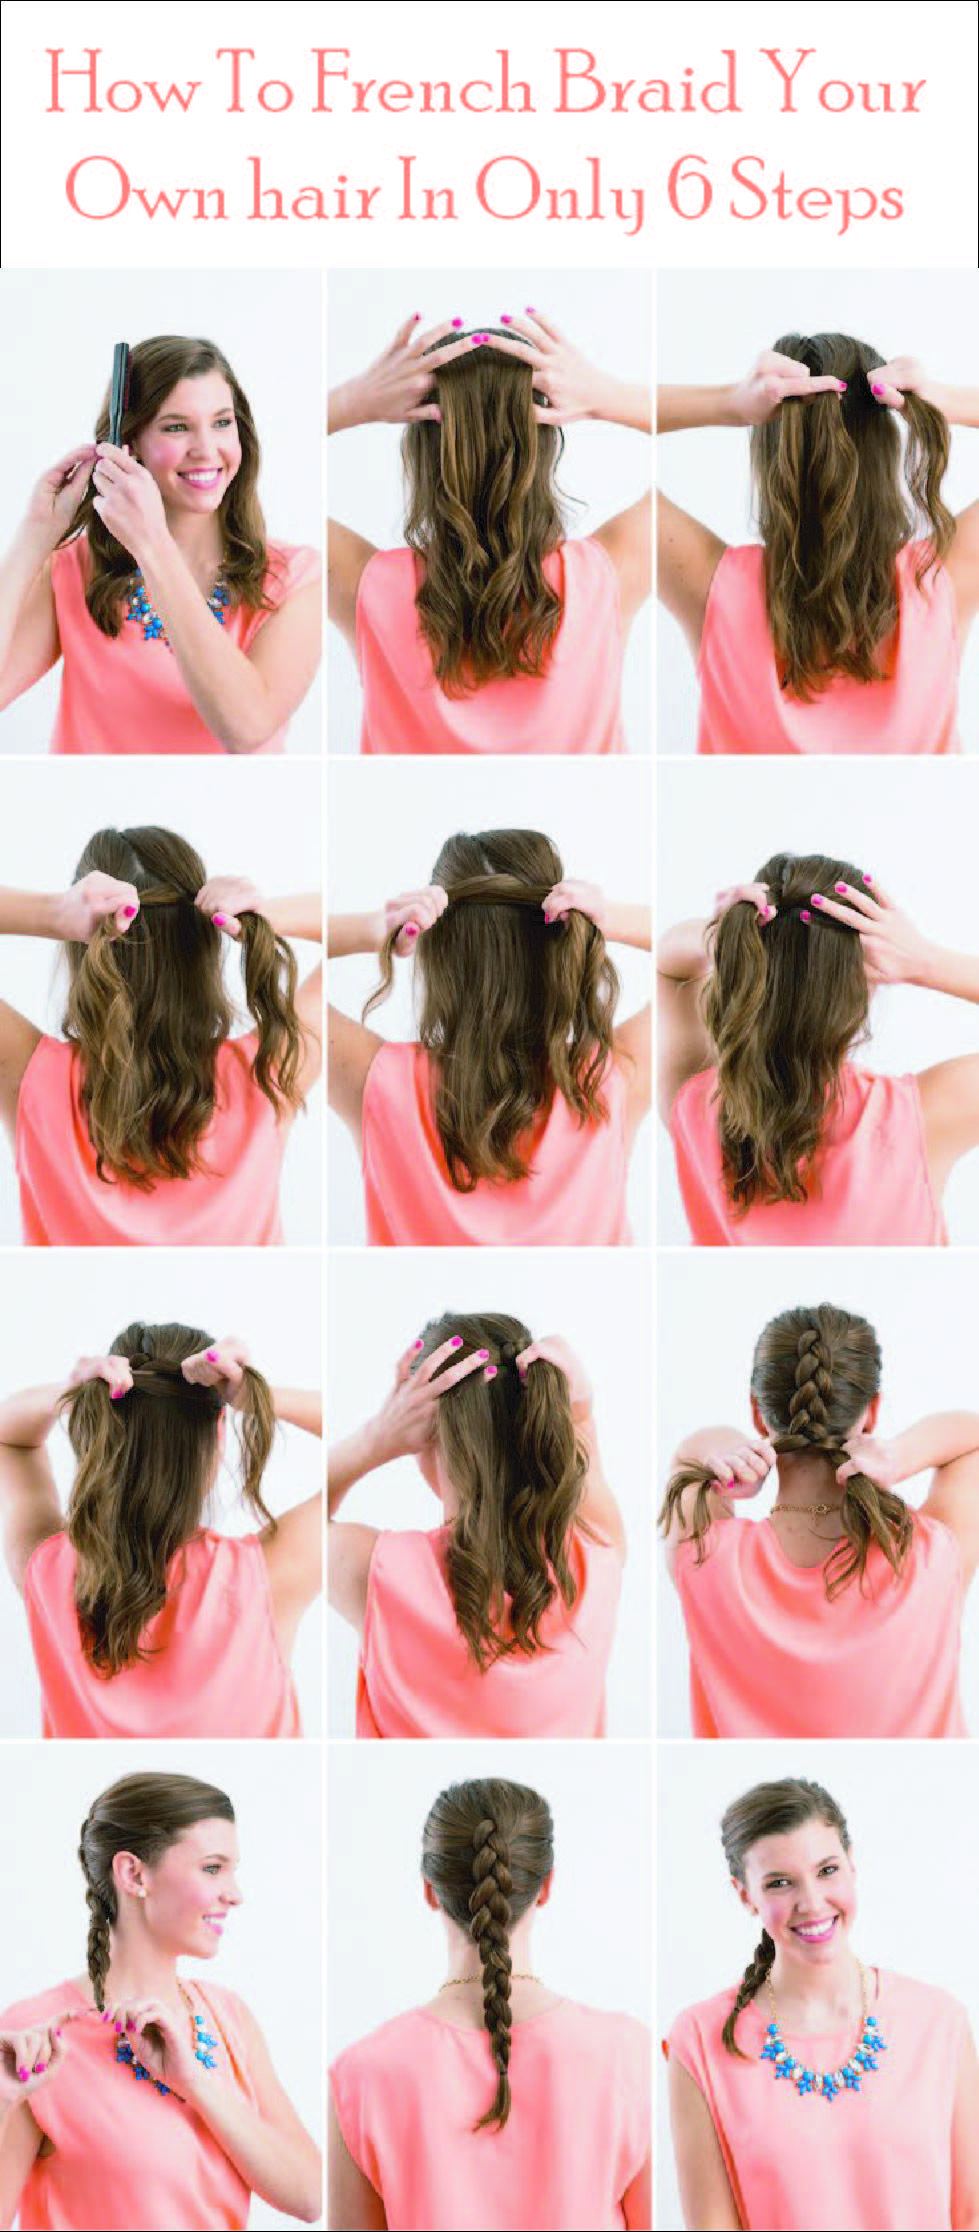 Fancy French Braids Want To Know How To French Braid Your Hair French Braids Are Very Braided Hairstyles Easy French Braid Short Hair French Braids Tutorial